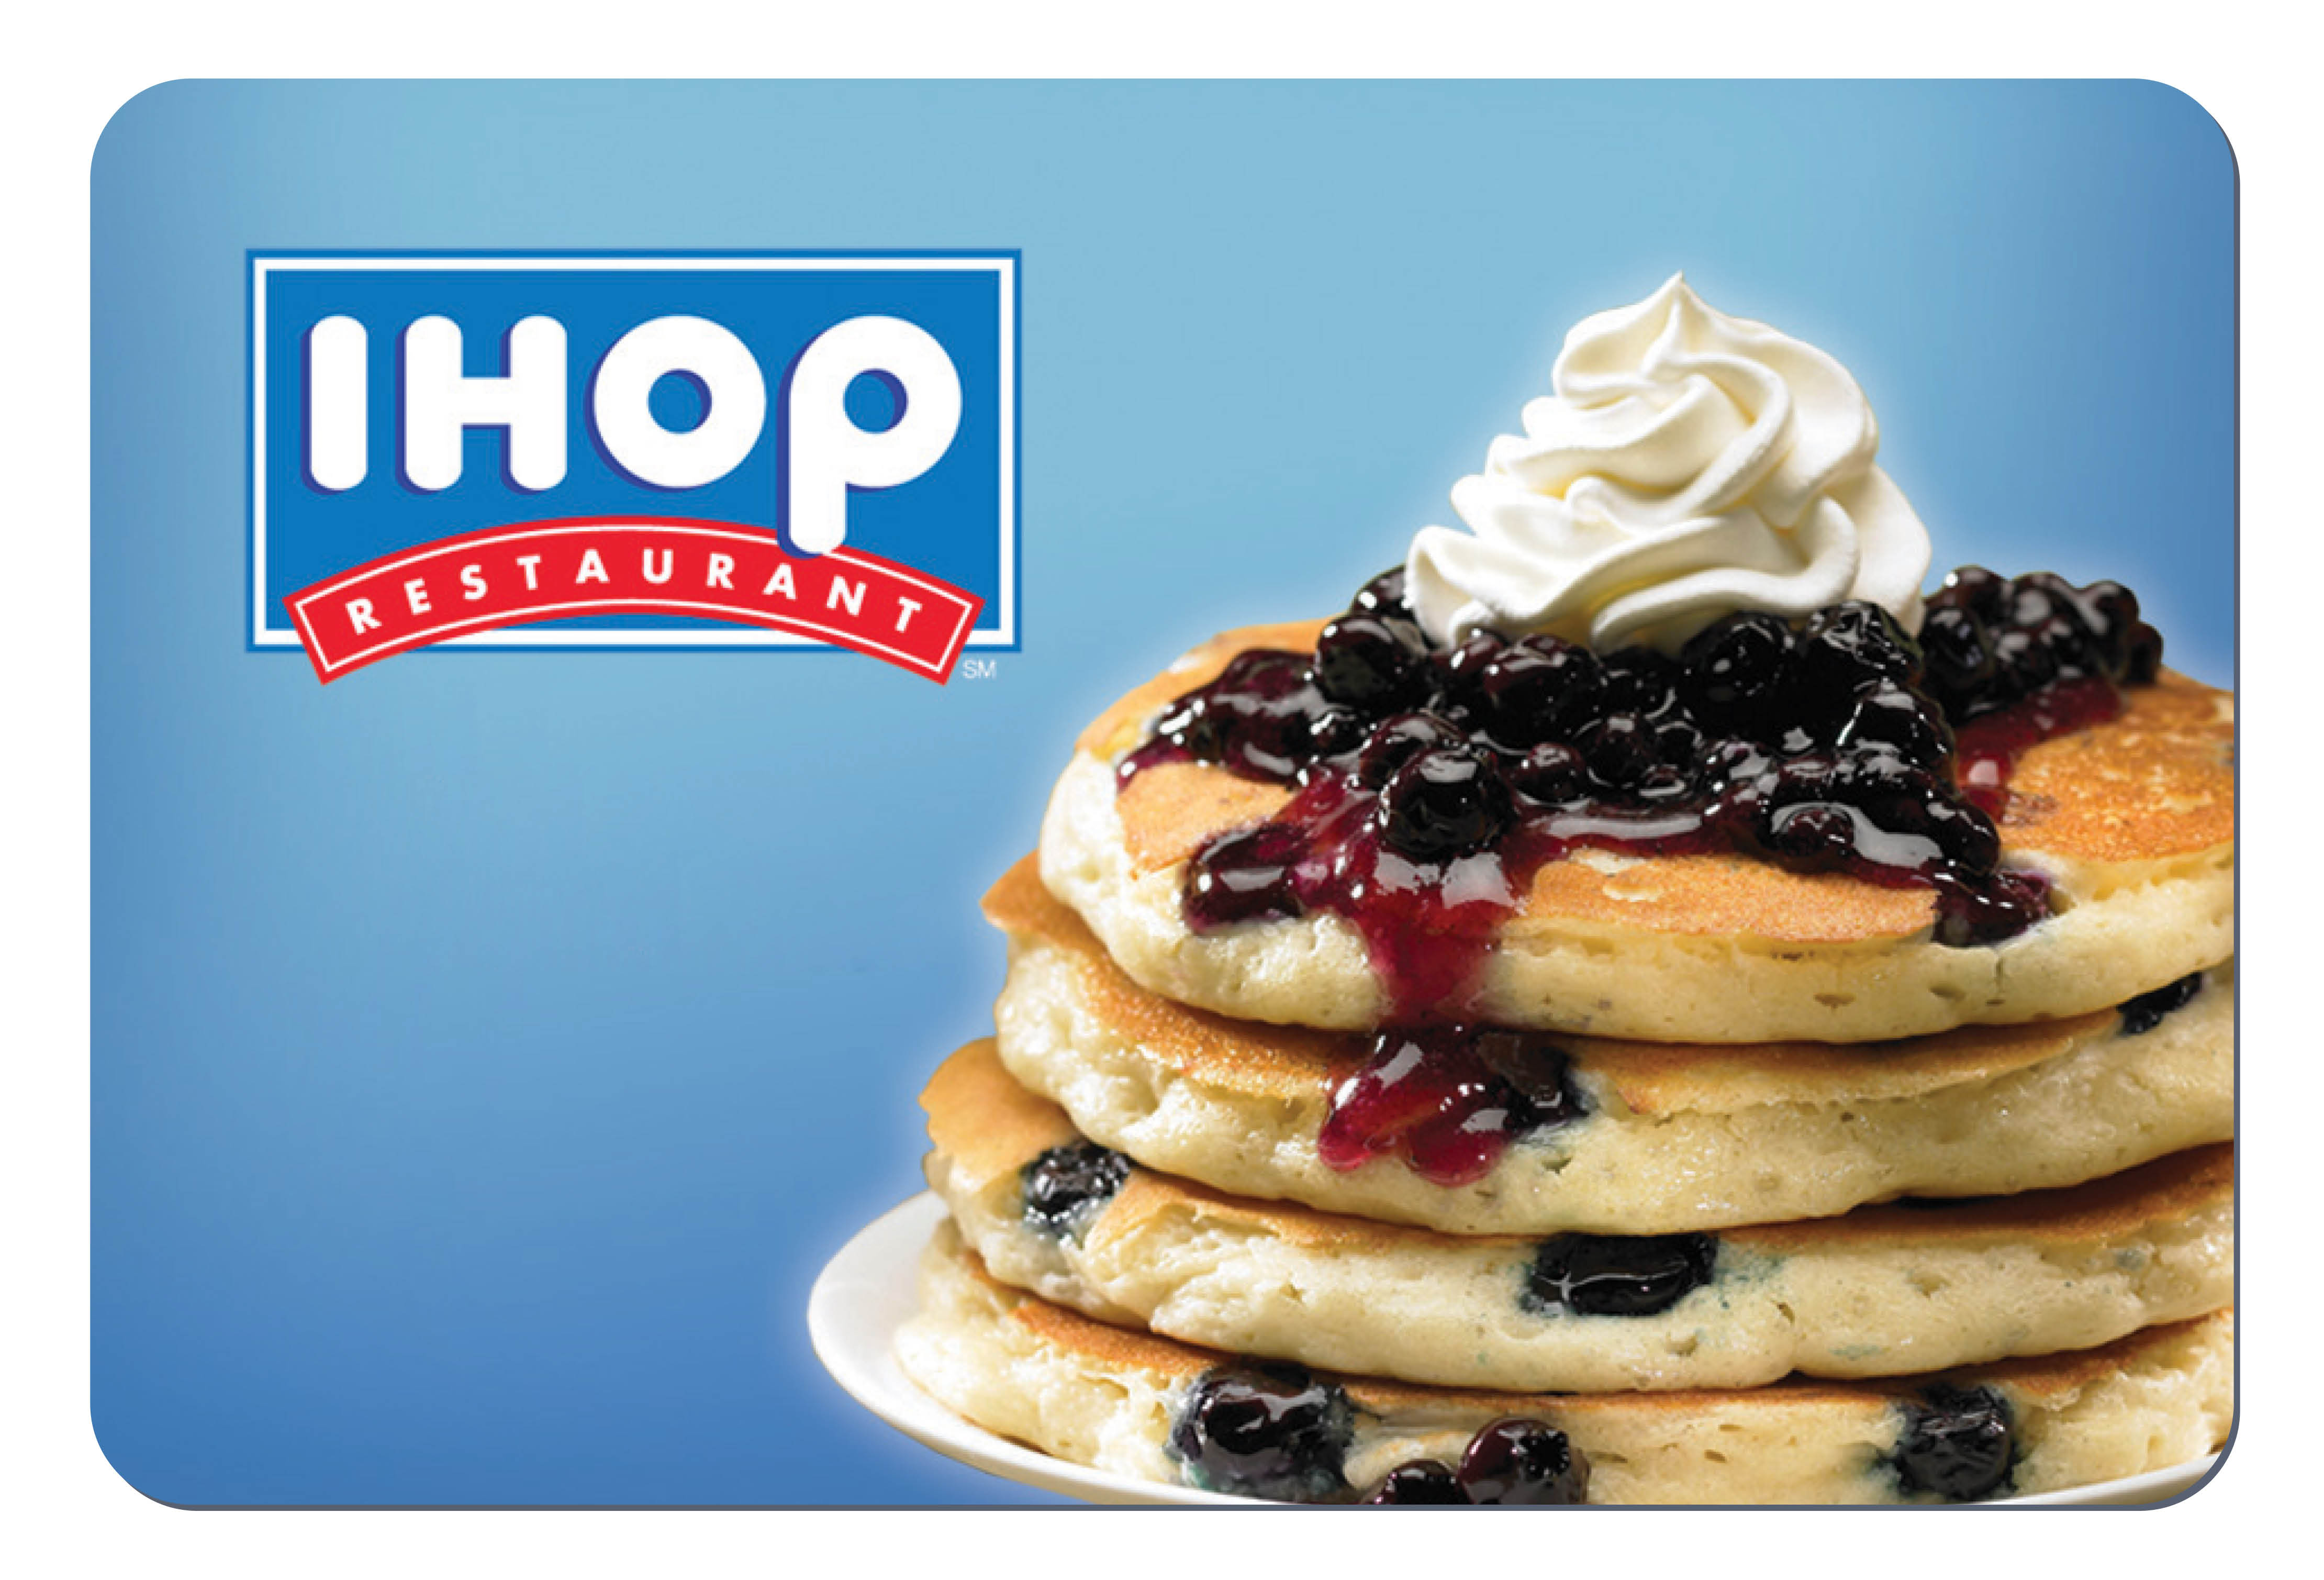 Nov 01, · Reserve a table at IHOP, Colorado Springs on TripAdvisor: See 51 unbiased reviews of IHOP, rated 4 of 5 on TripAdvisor and ranked # of 1, restaurants in Colorado Springs.4/4(50).